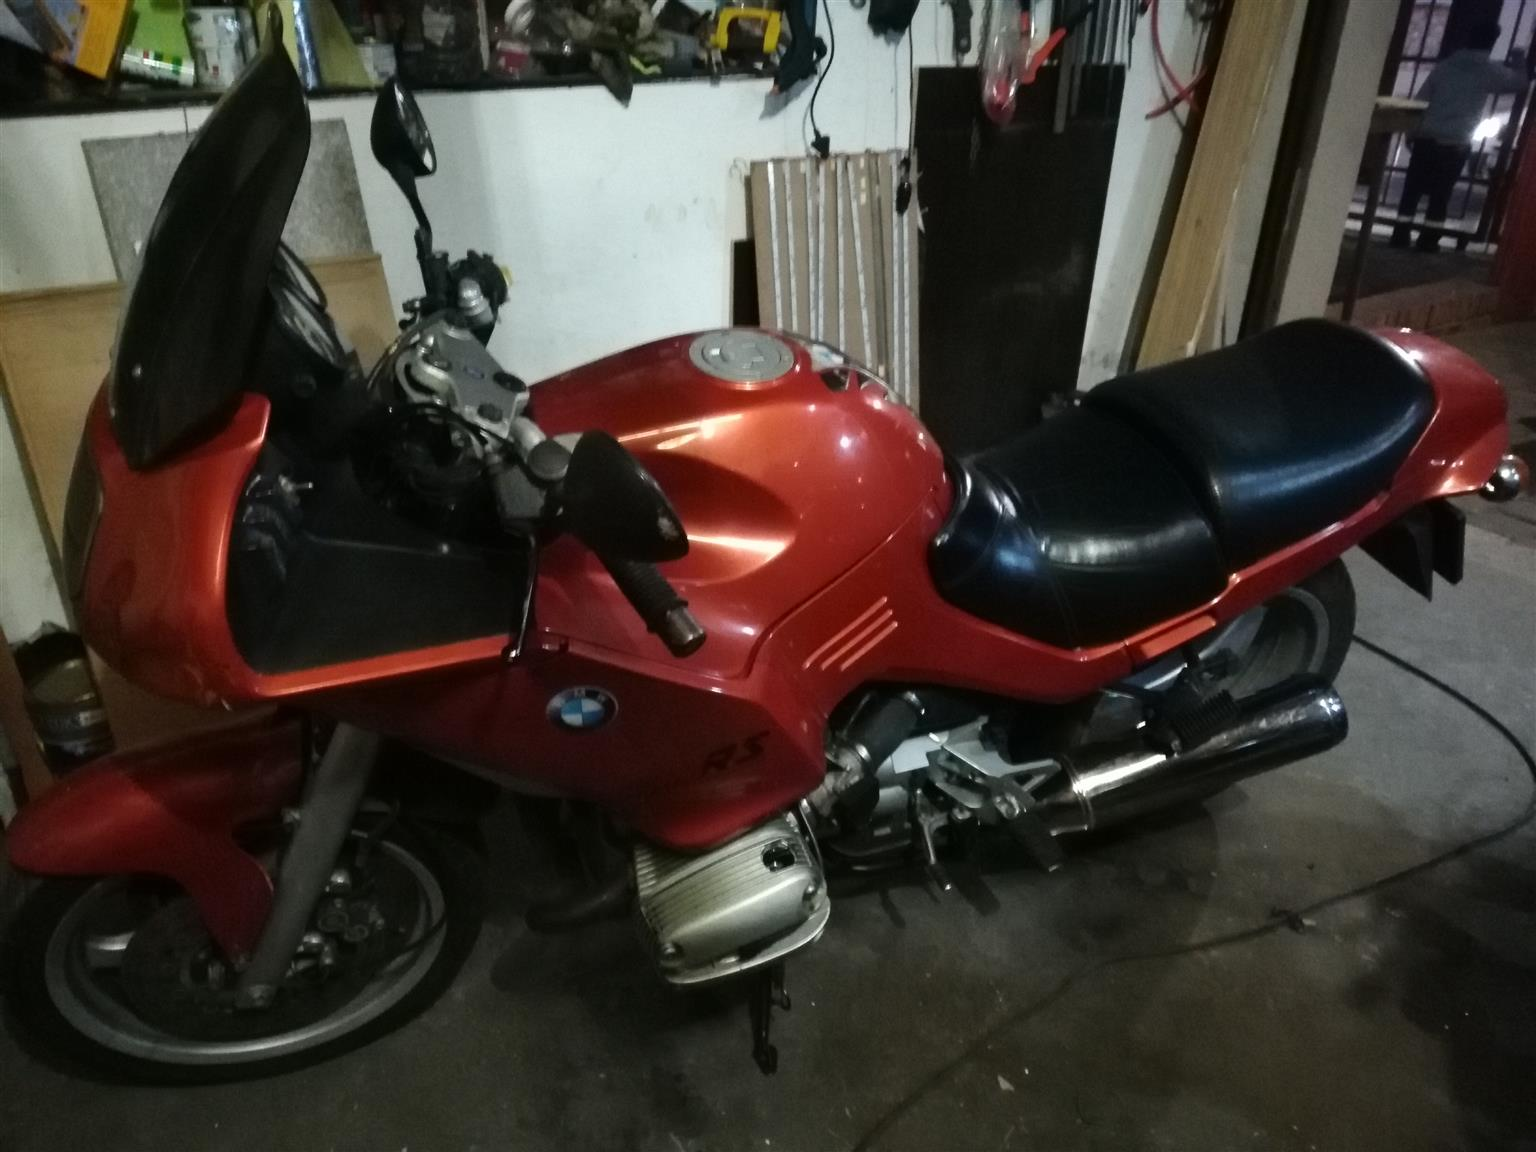 BMWR1100S complete stripped without engine for sale